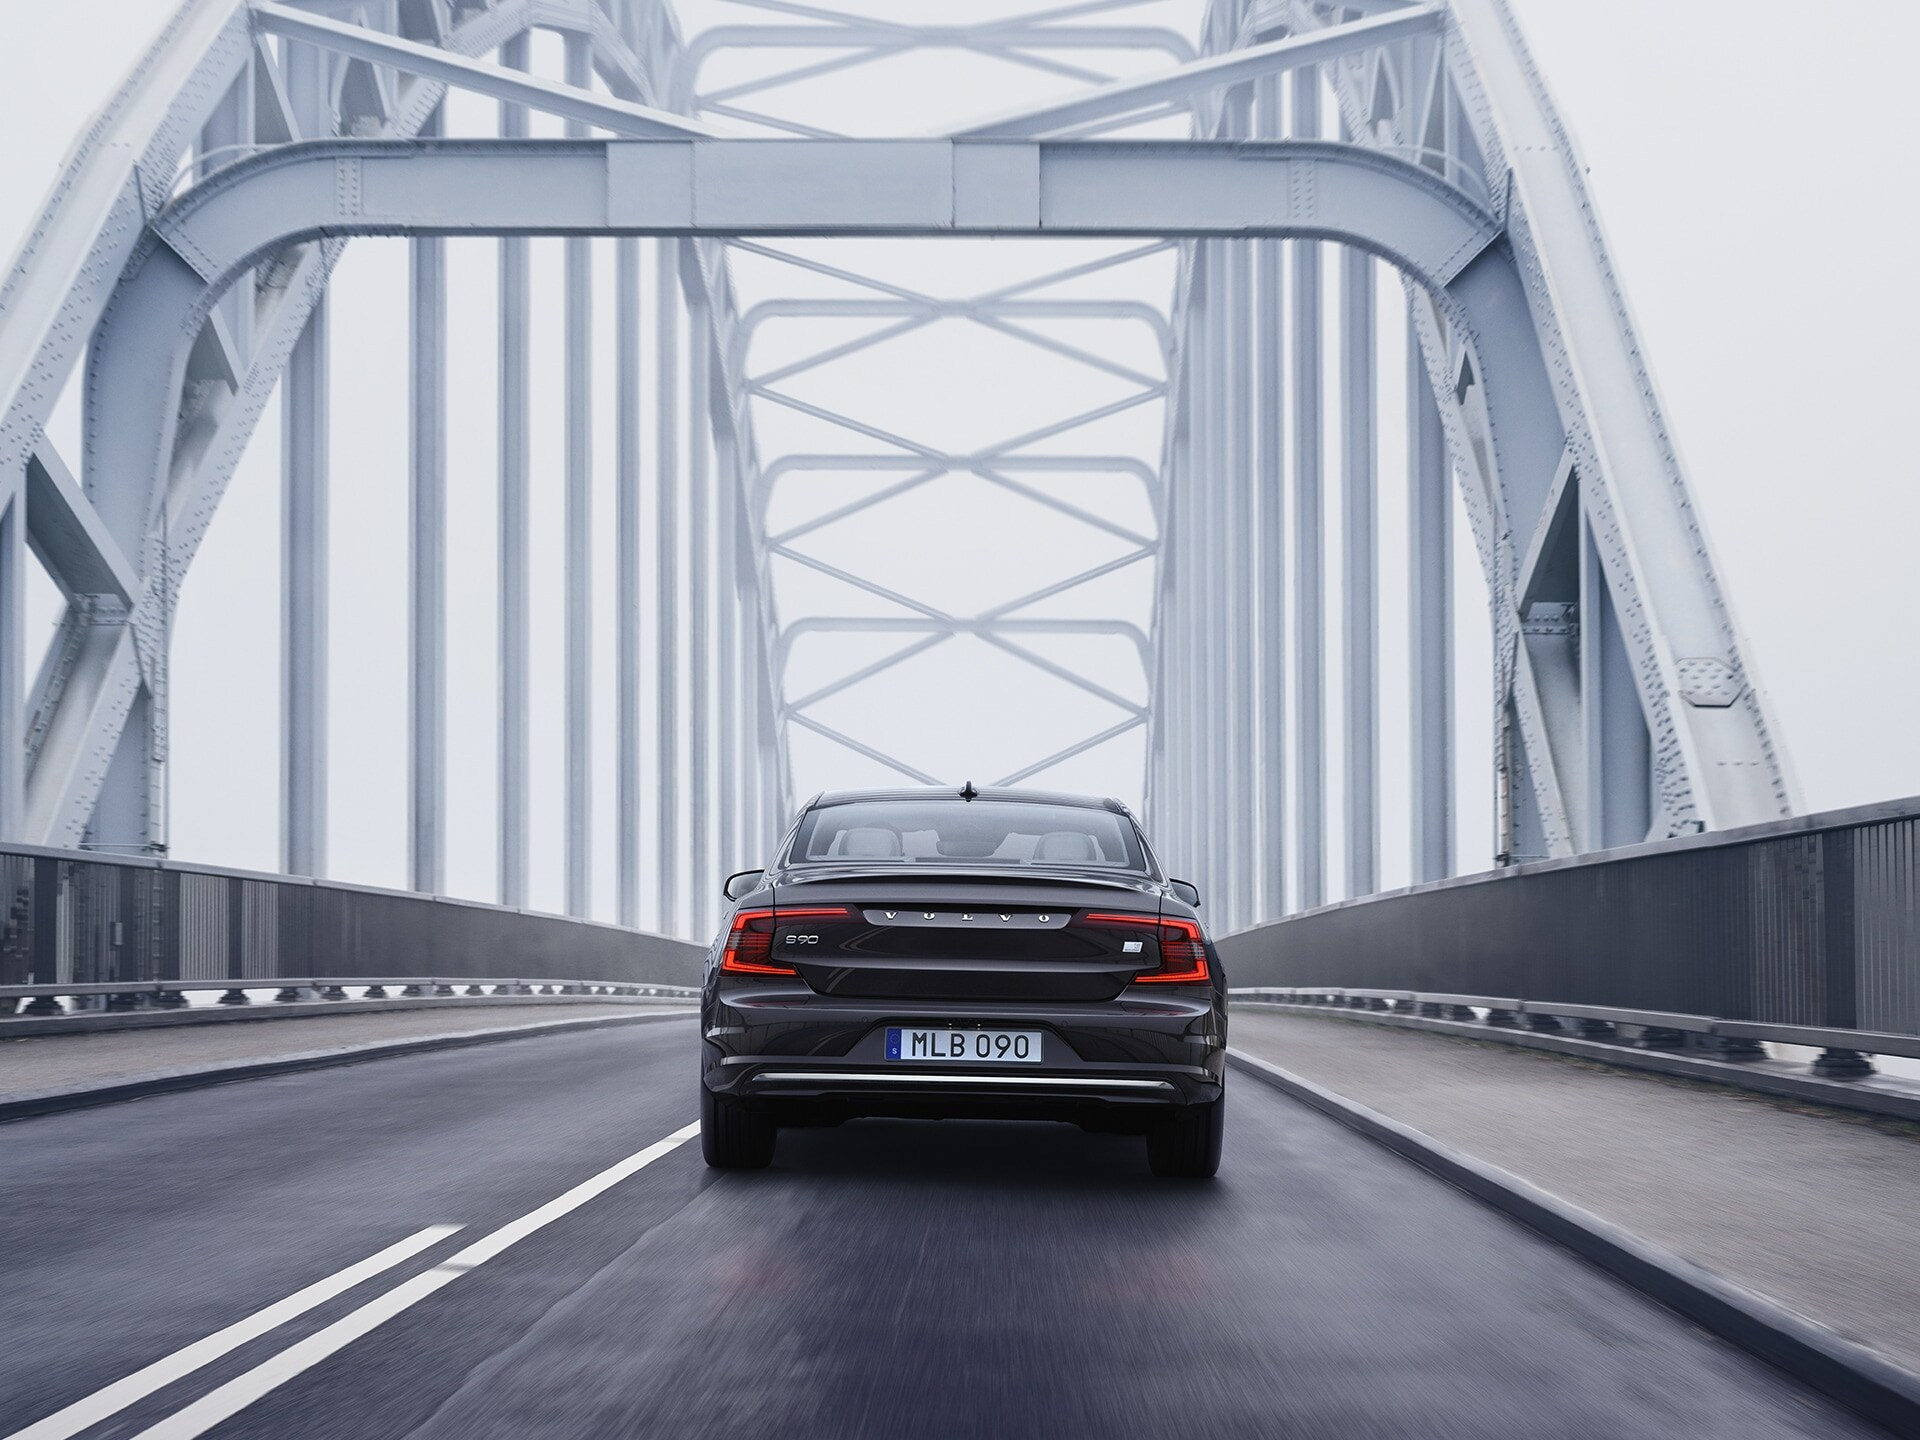 A Volvo S90 Recharge is driving on a bridge on a cloudy day.